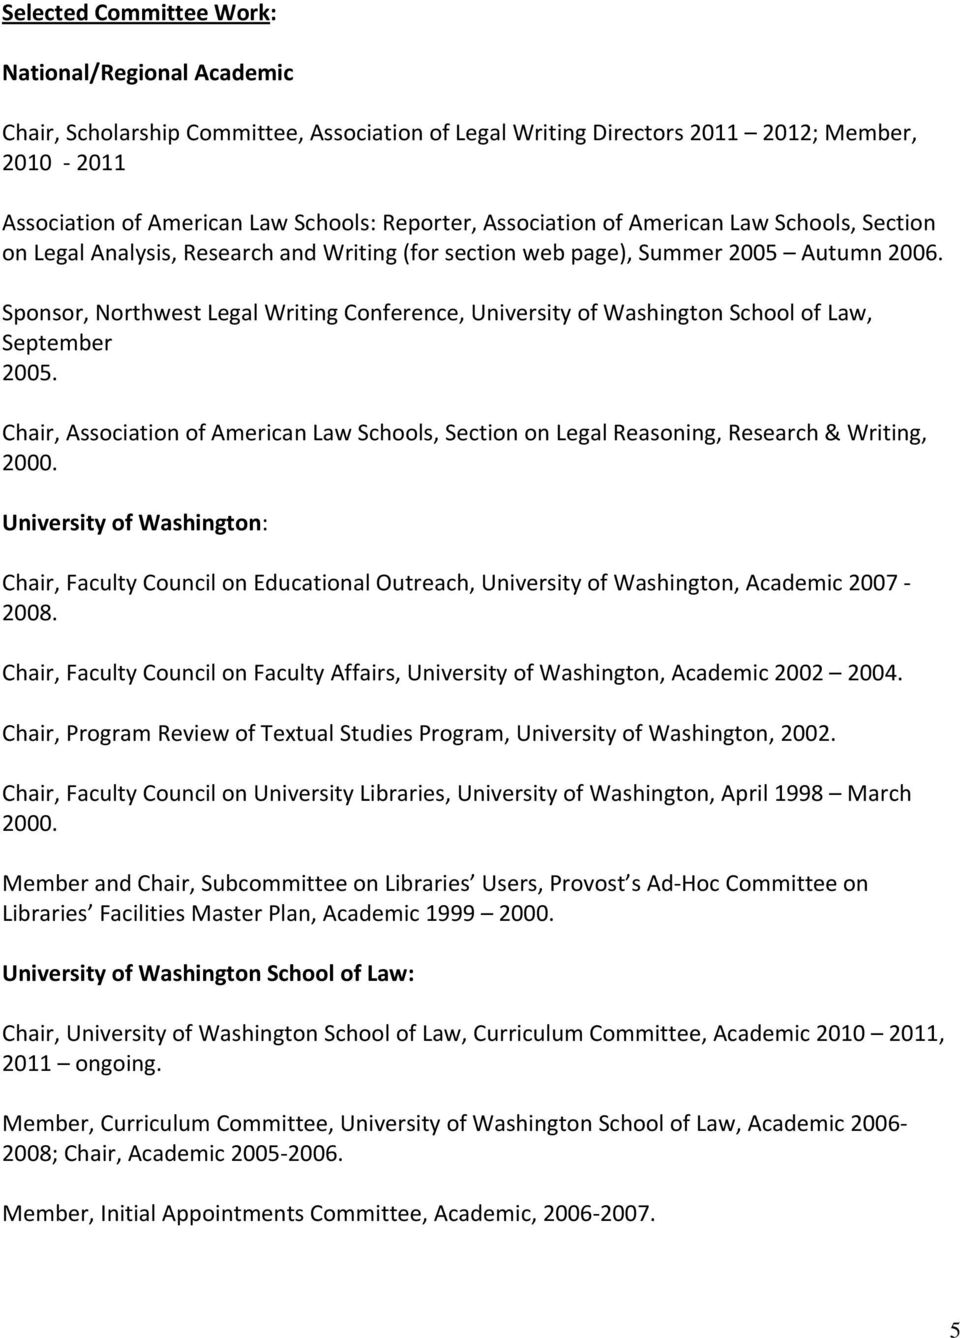 Sponsor, Northwest Legal Writing Conference, University of Washington School of Law, September 2005. Chair, Association of American Law Schools, Section on Legal Reasoning, Research & Writing, 2000.